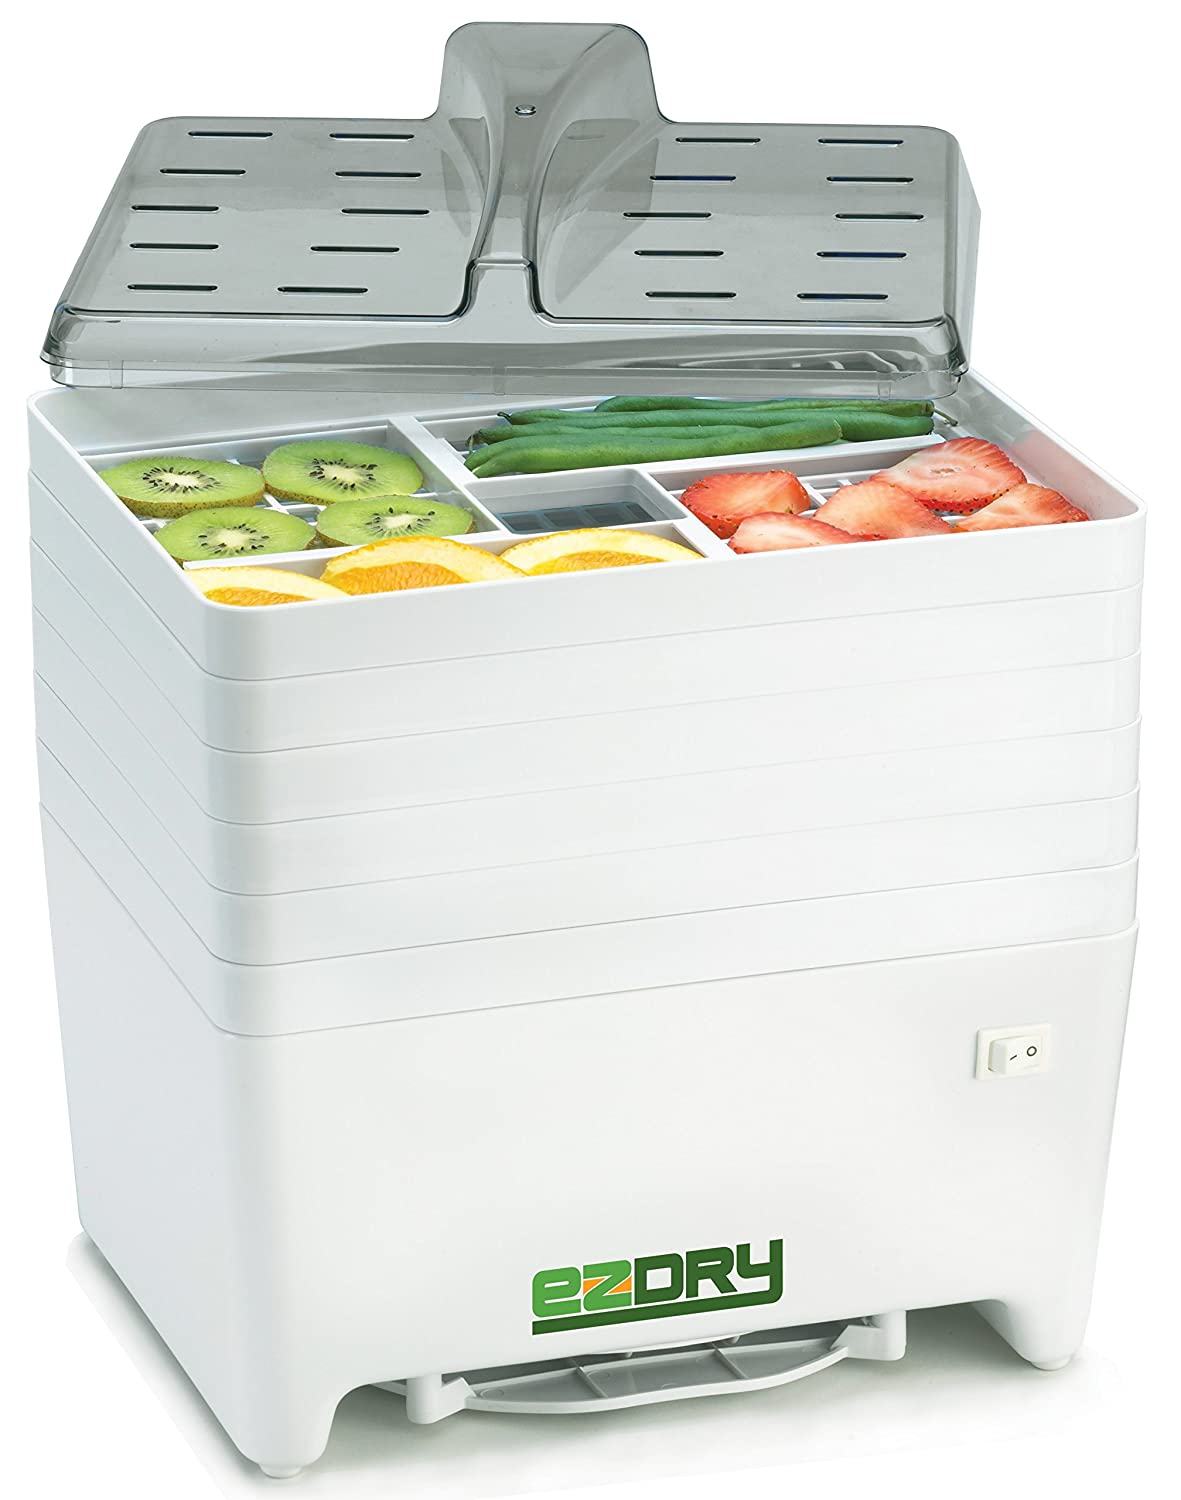 Excalibur EPD60W EZ Dry 6-Tray Stackable Electric Food Dehydrator Features a Constant Temperature of 120 to 165 Degree Fahrenheit BPA Free, White The Legacy Companies USA